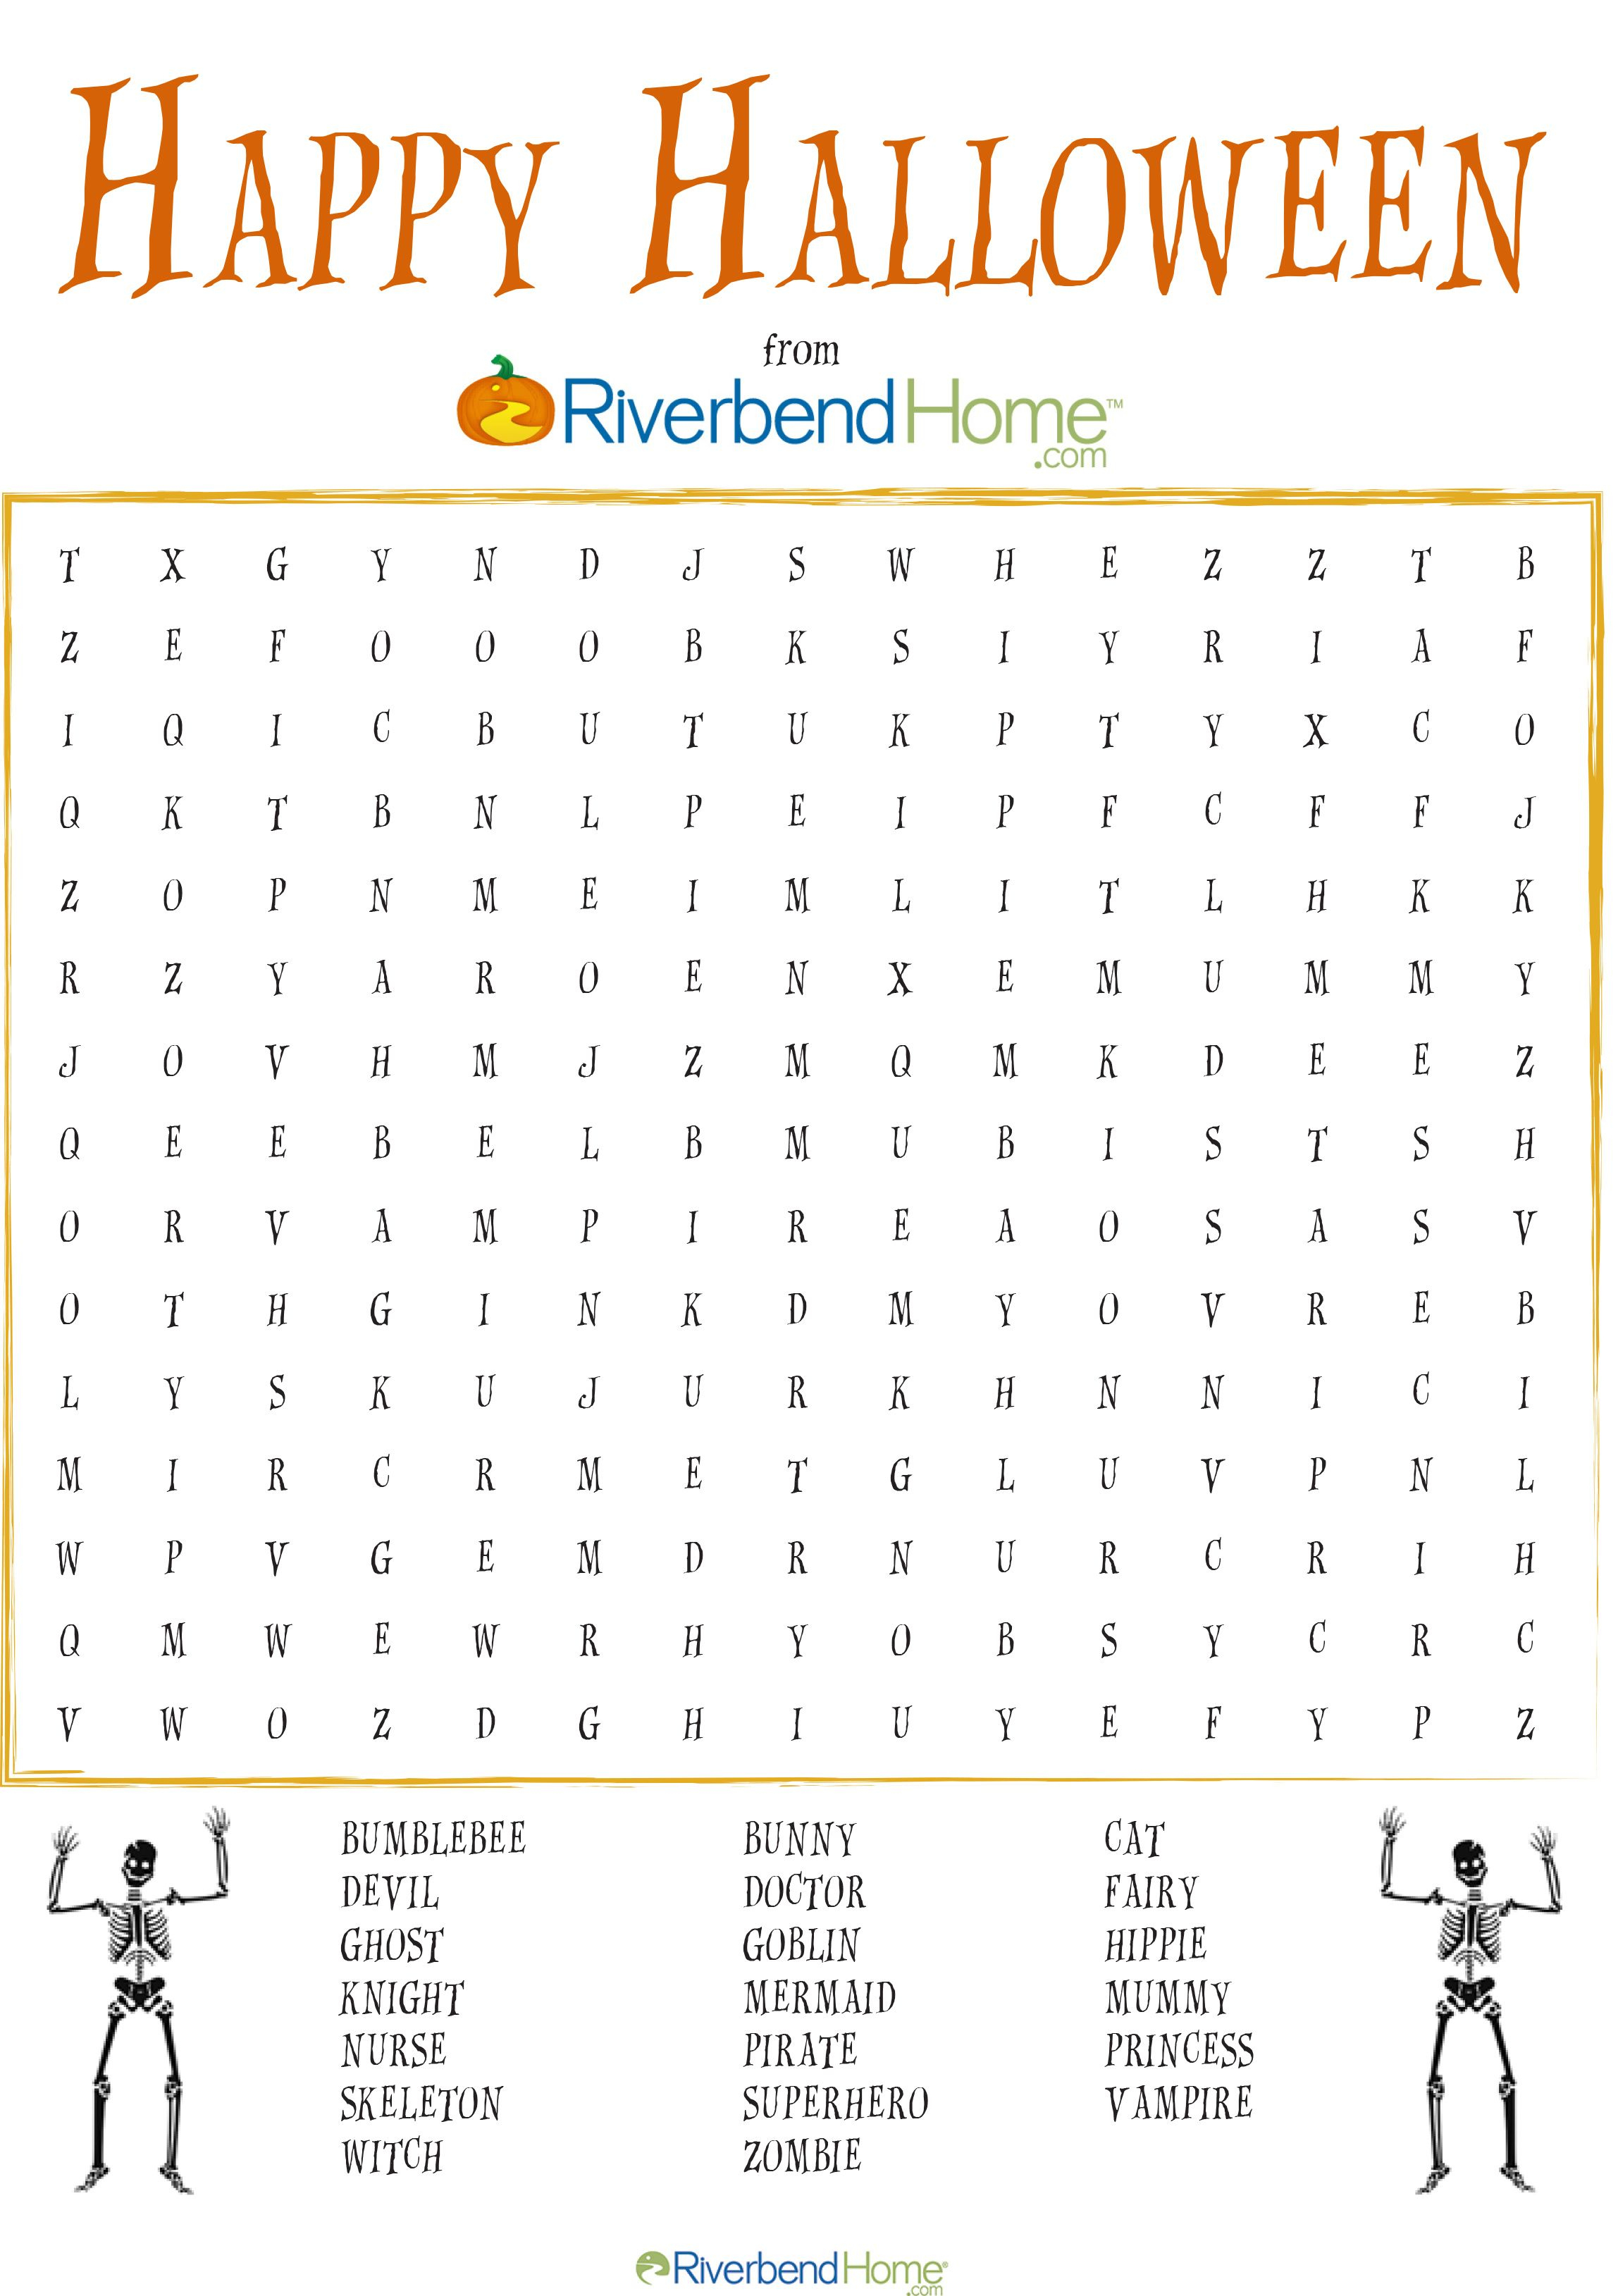 Free Printable Halloween Word Search Puzzle | Halloween | Halloween - Printable Halloween Crossword Puzzles Word Searches